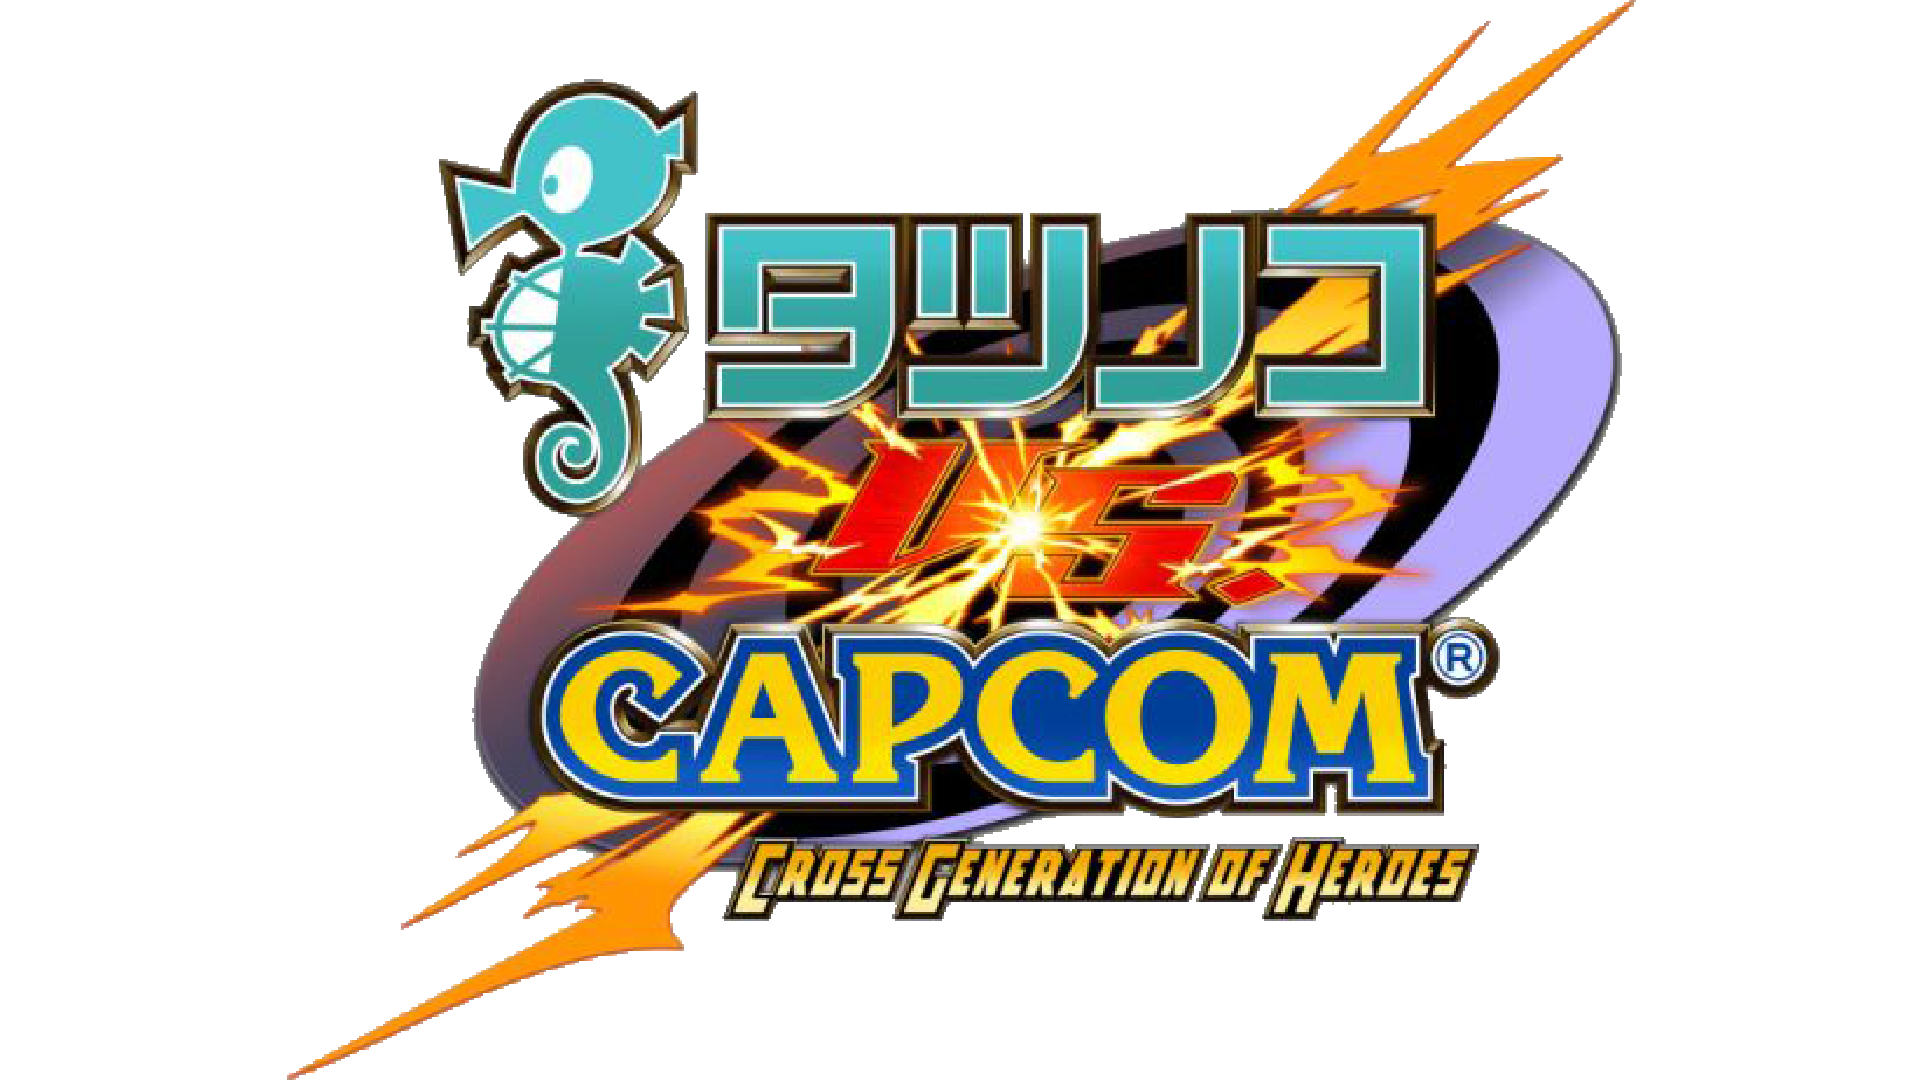 Tatsunoko vs. Capcom: Cross Generation of Heroes Logo